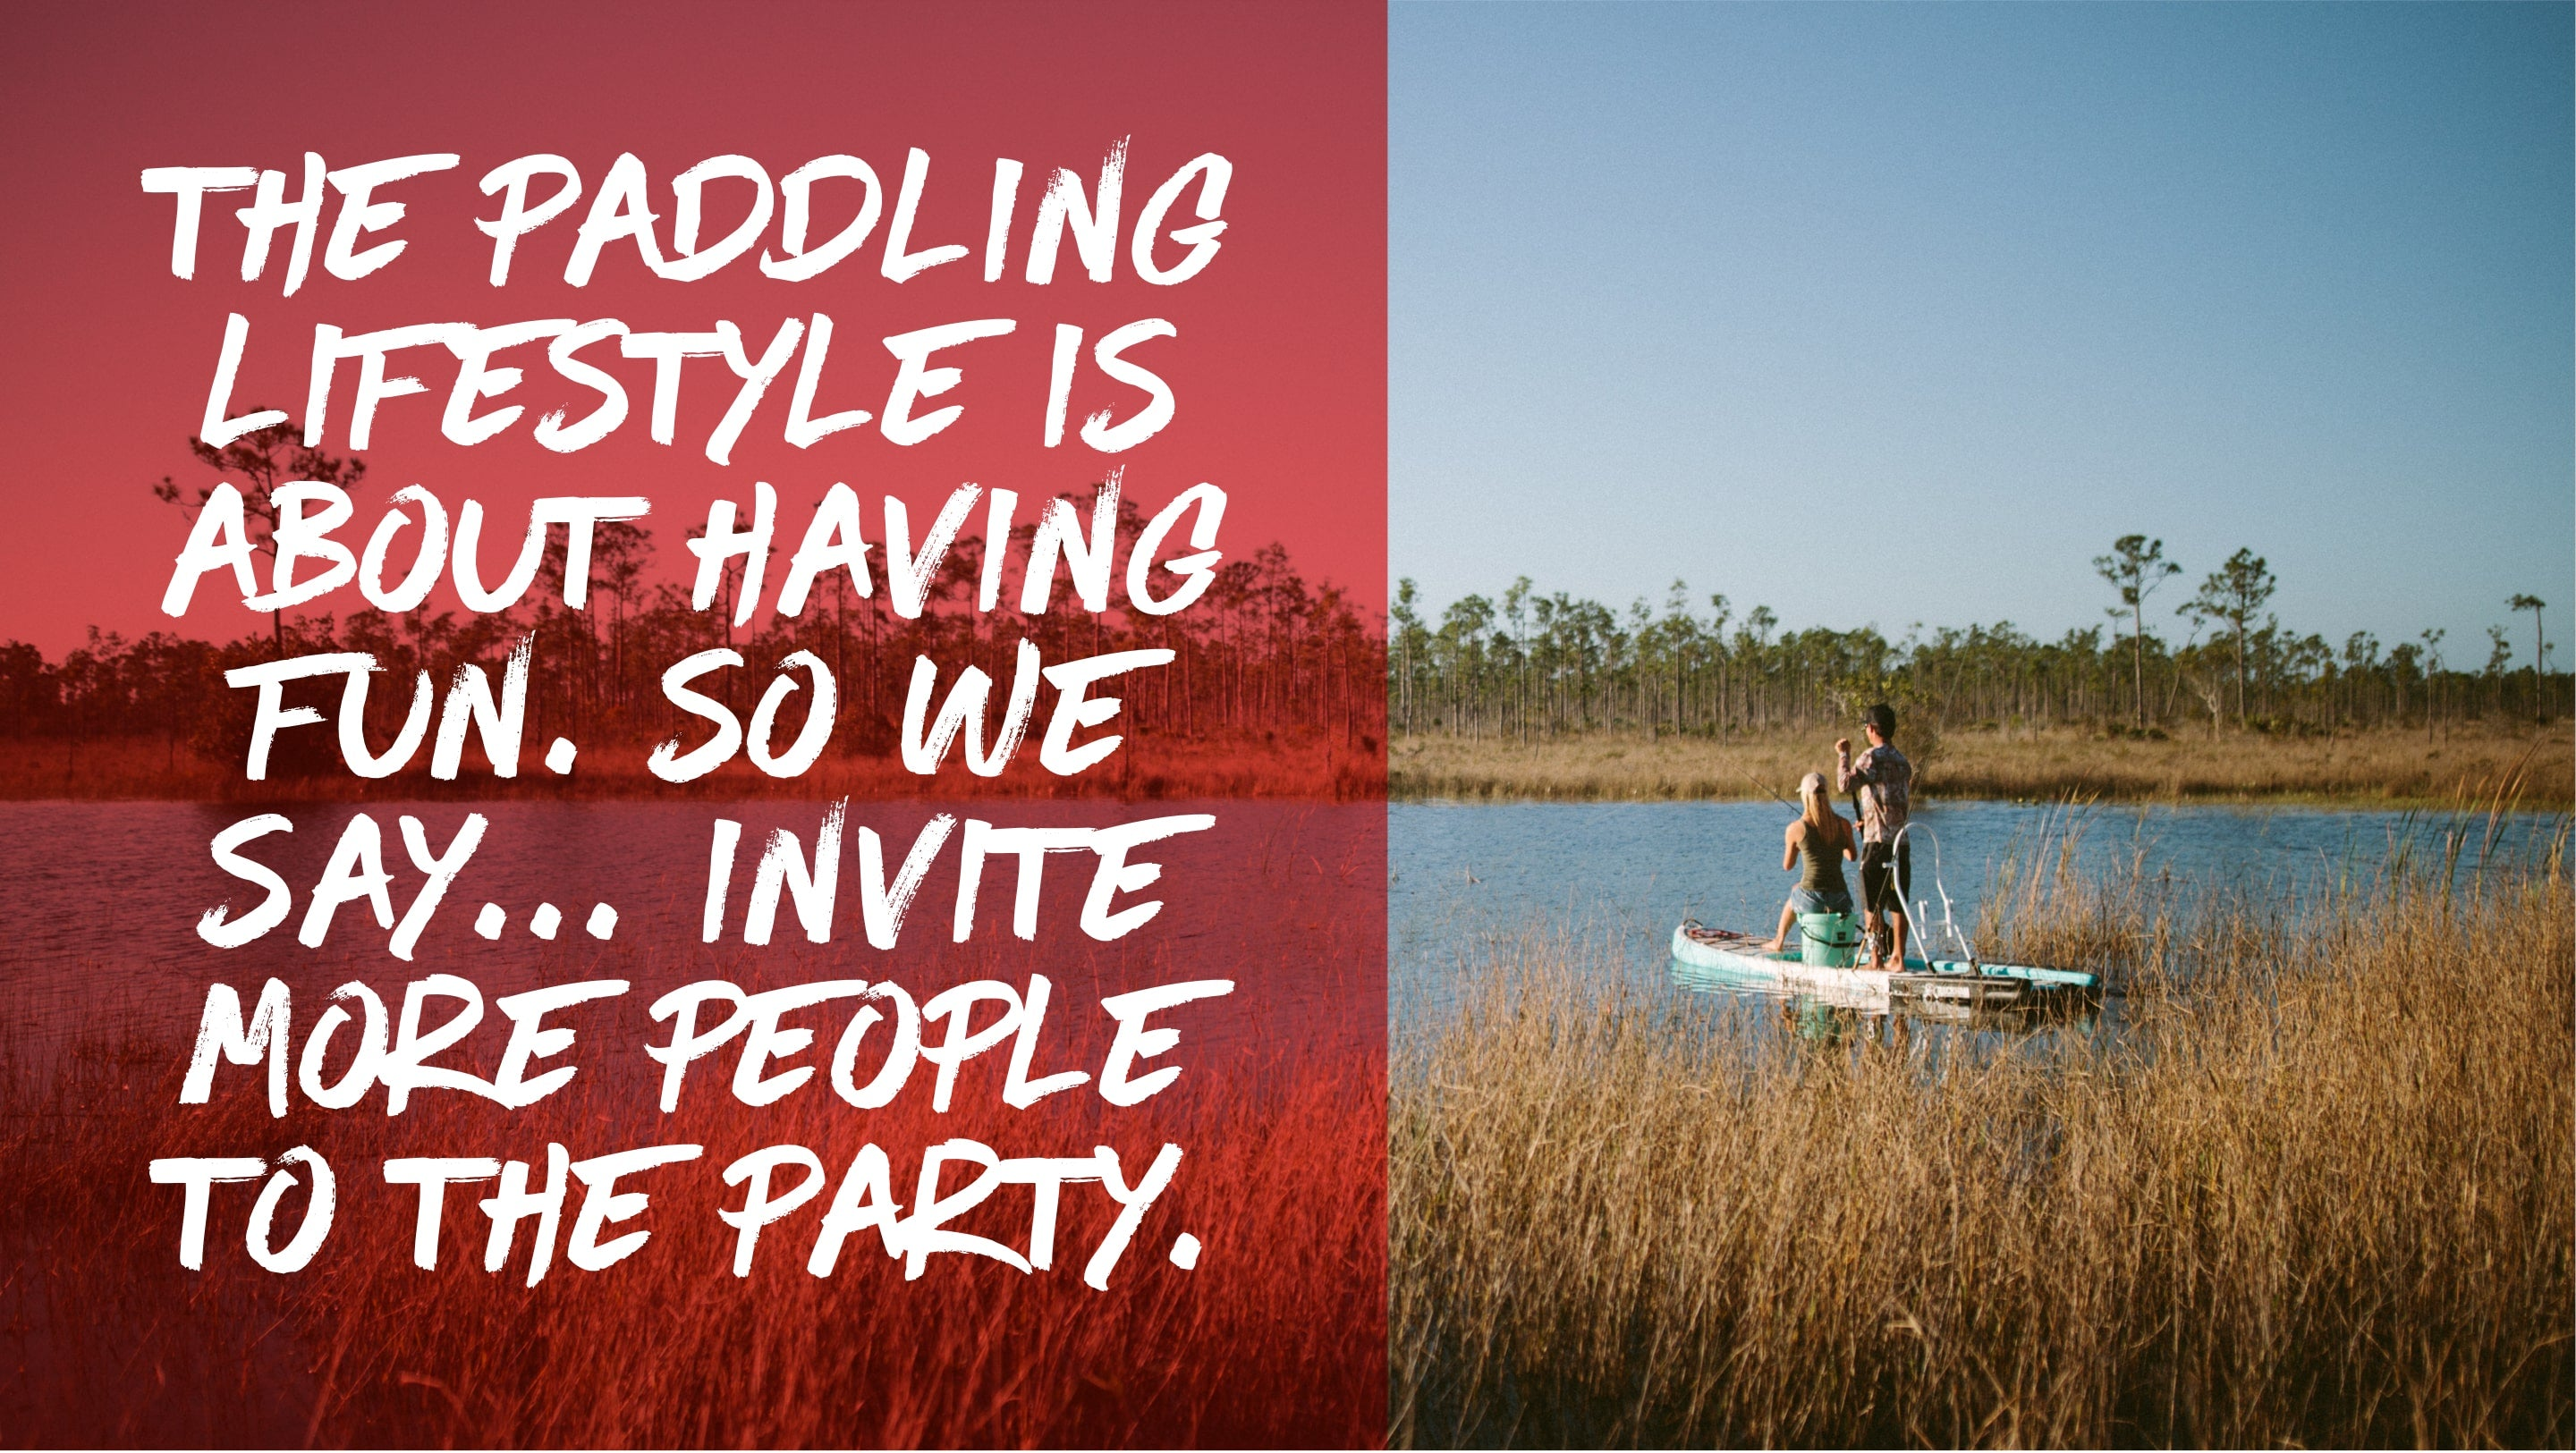 The paddling lifestyle is about having fun. So we say... invite more people to the party.